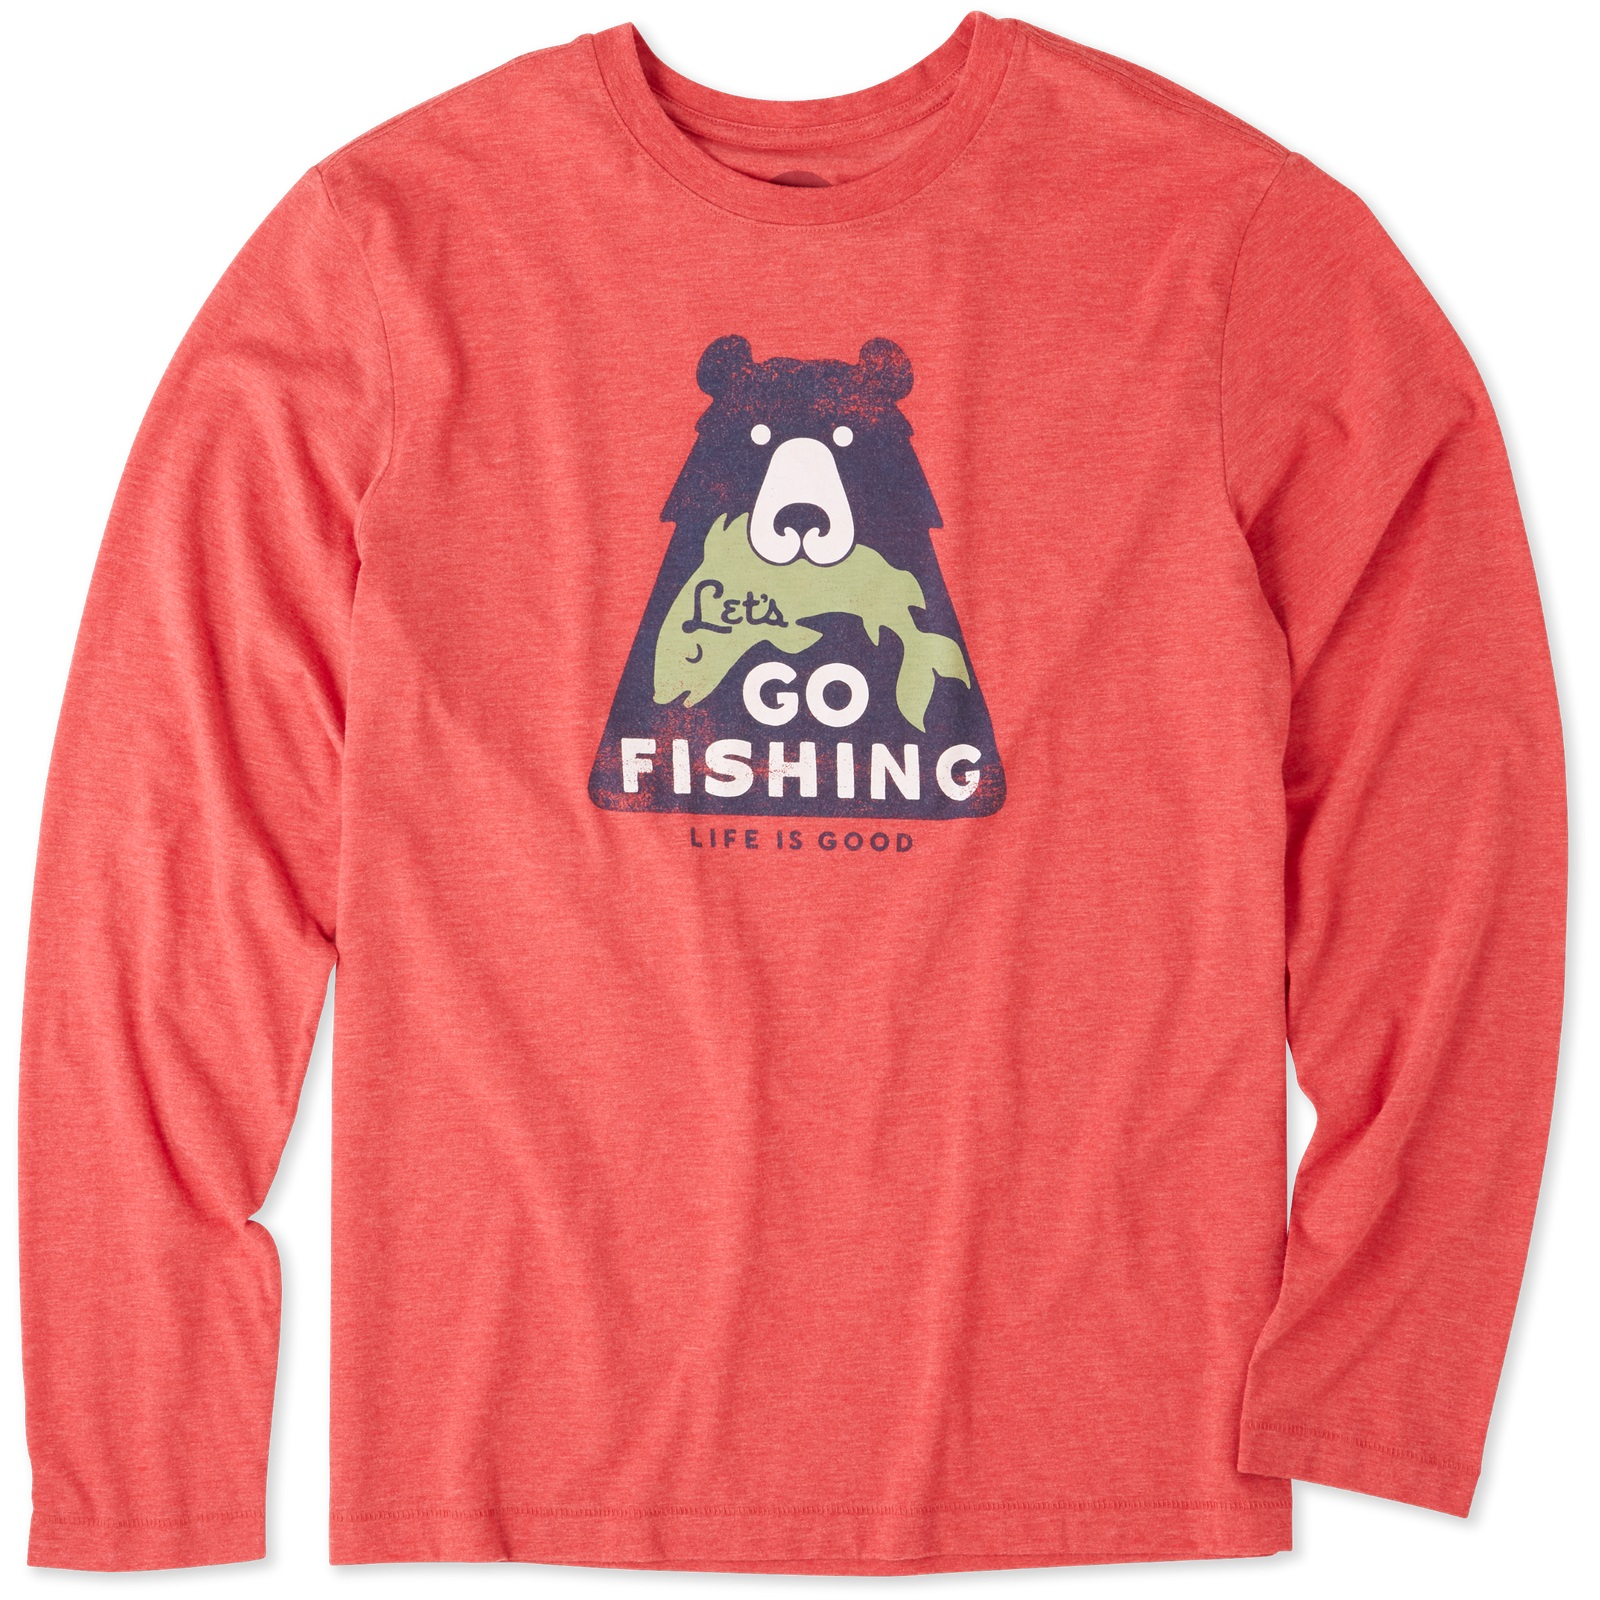 4920619f1d5aac Details about Life is Good. Mens Long Sleeve Cool Tee: Let's Go Fishing ,  Americana Red